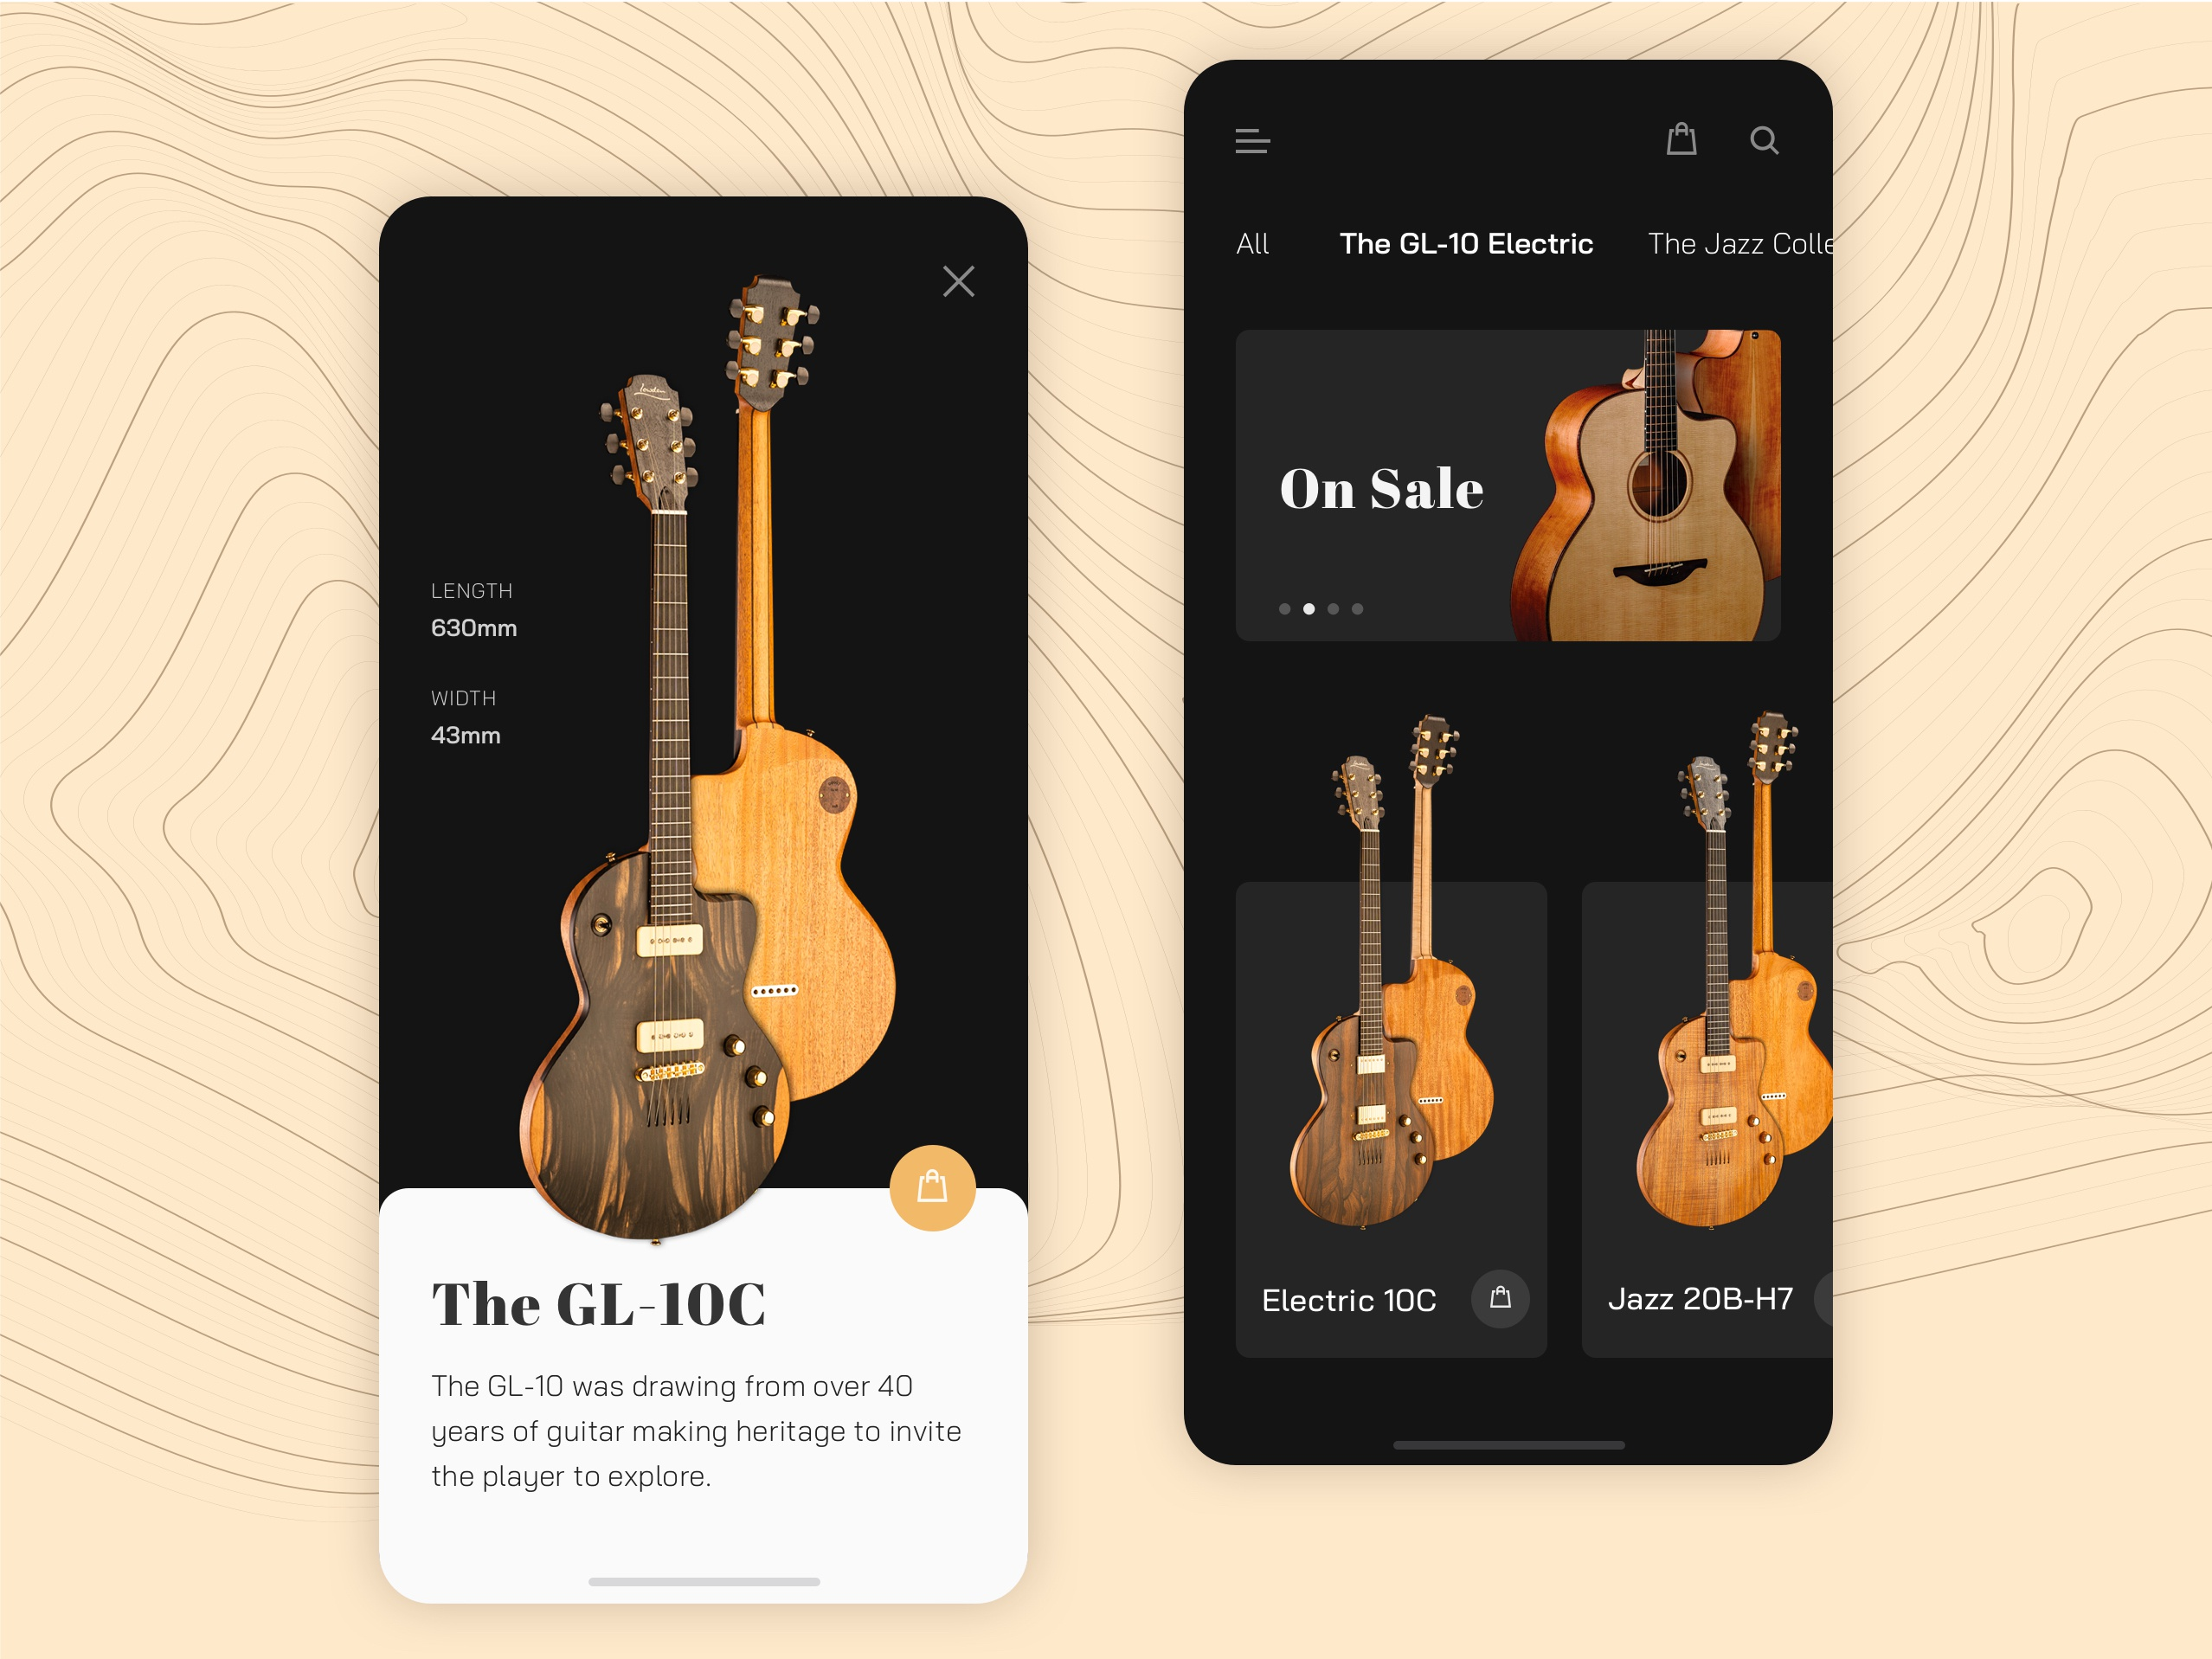 Guitar product